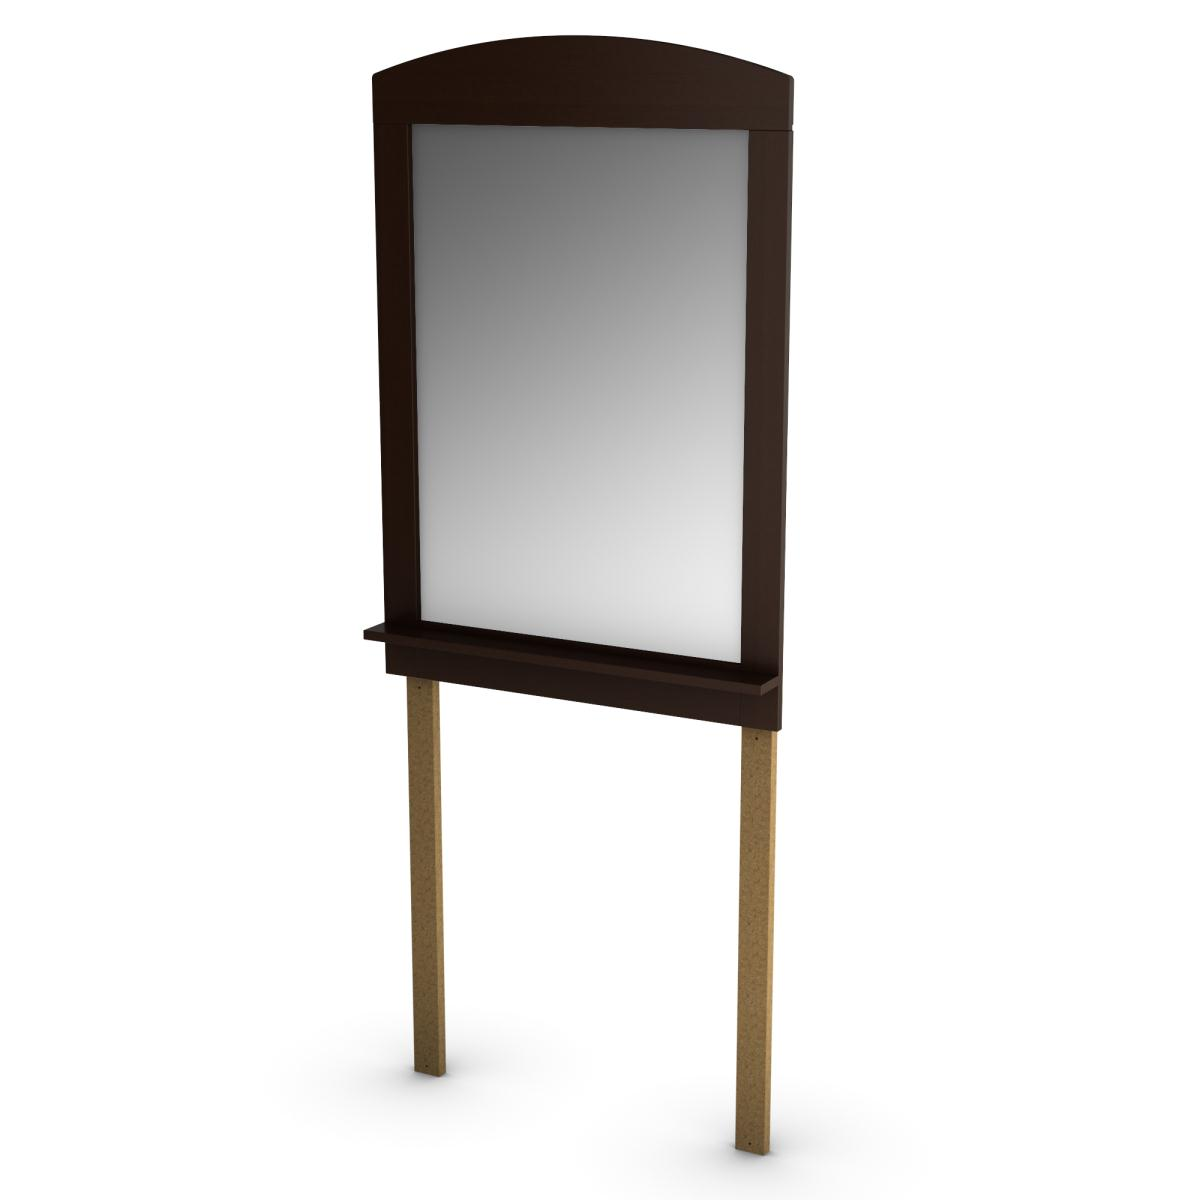 South Shore Logik Mirror 28 Inch x 41 Inch - Chocolate